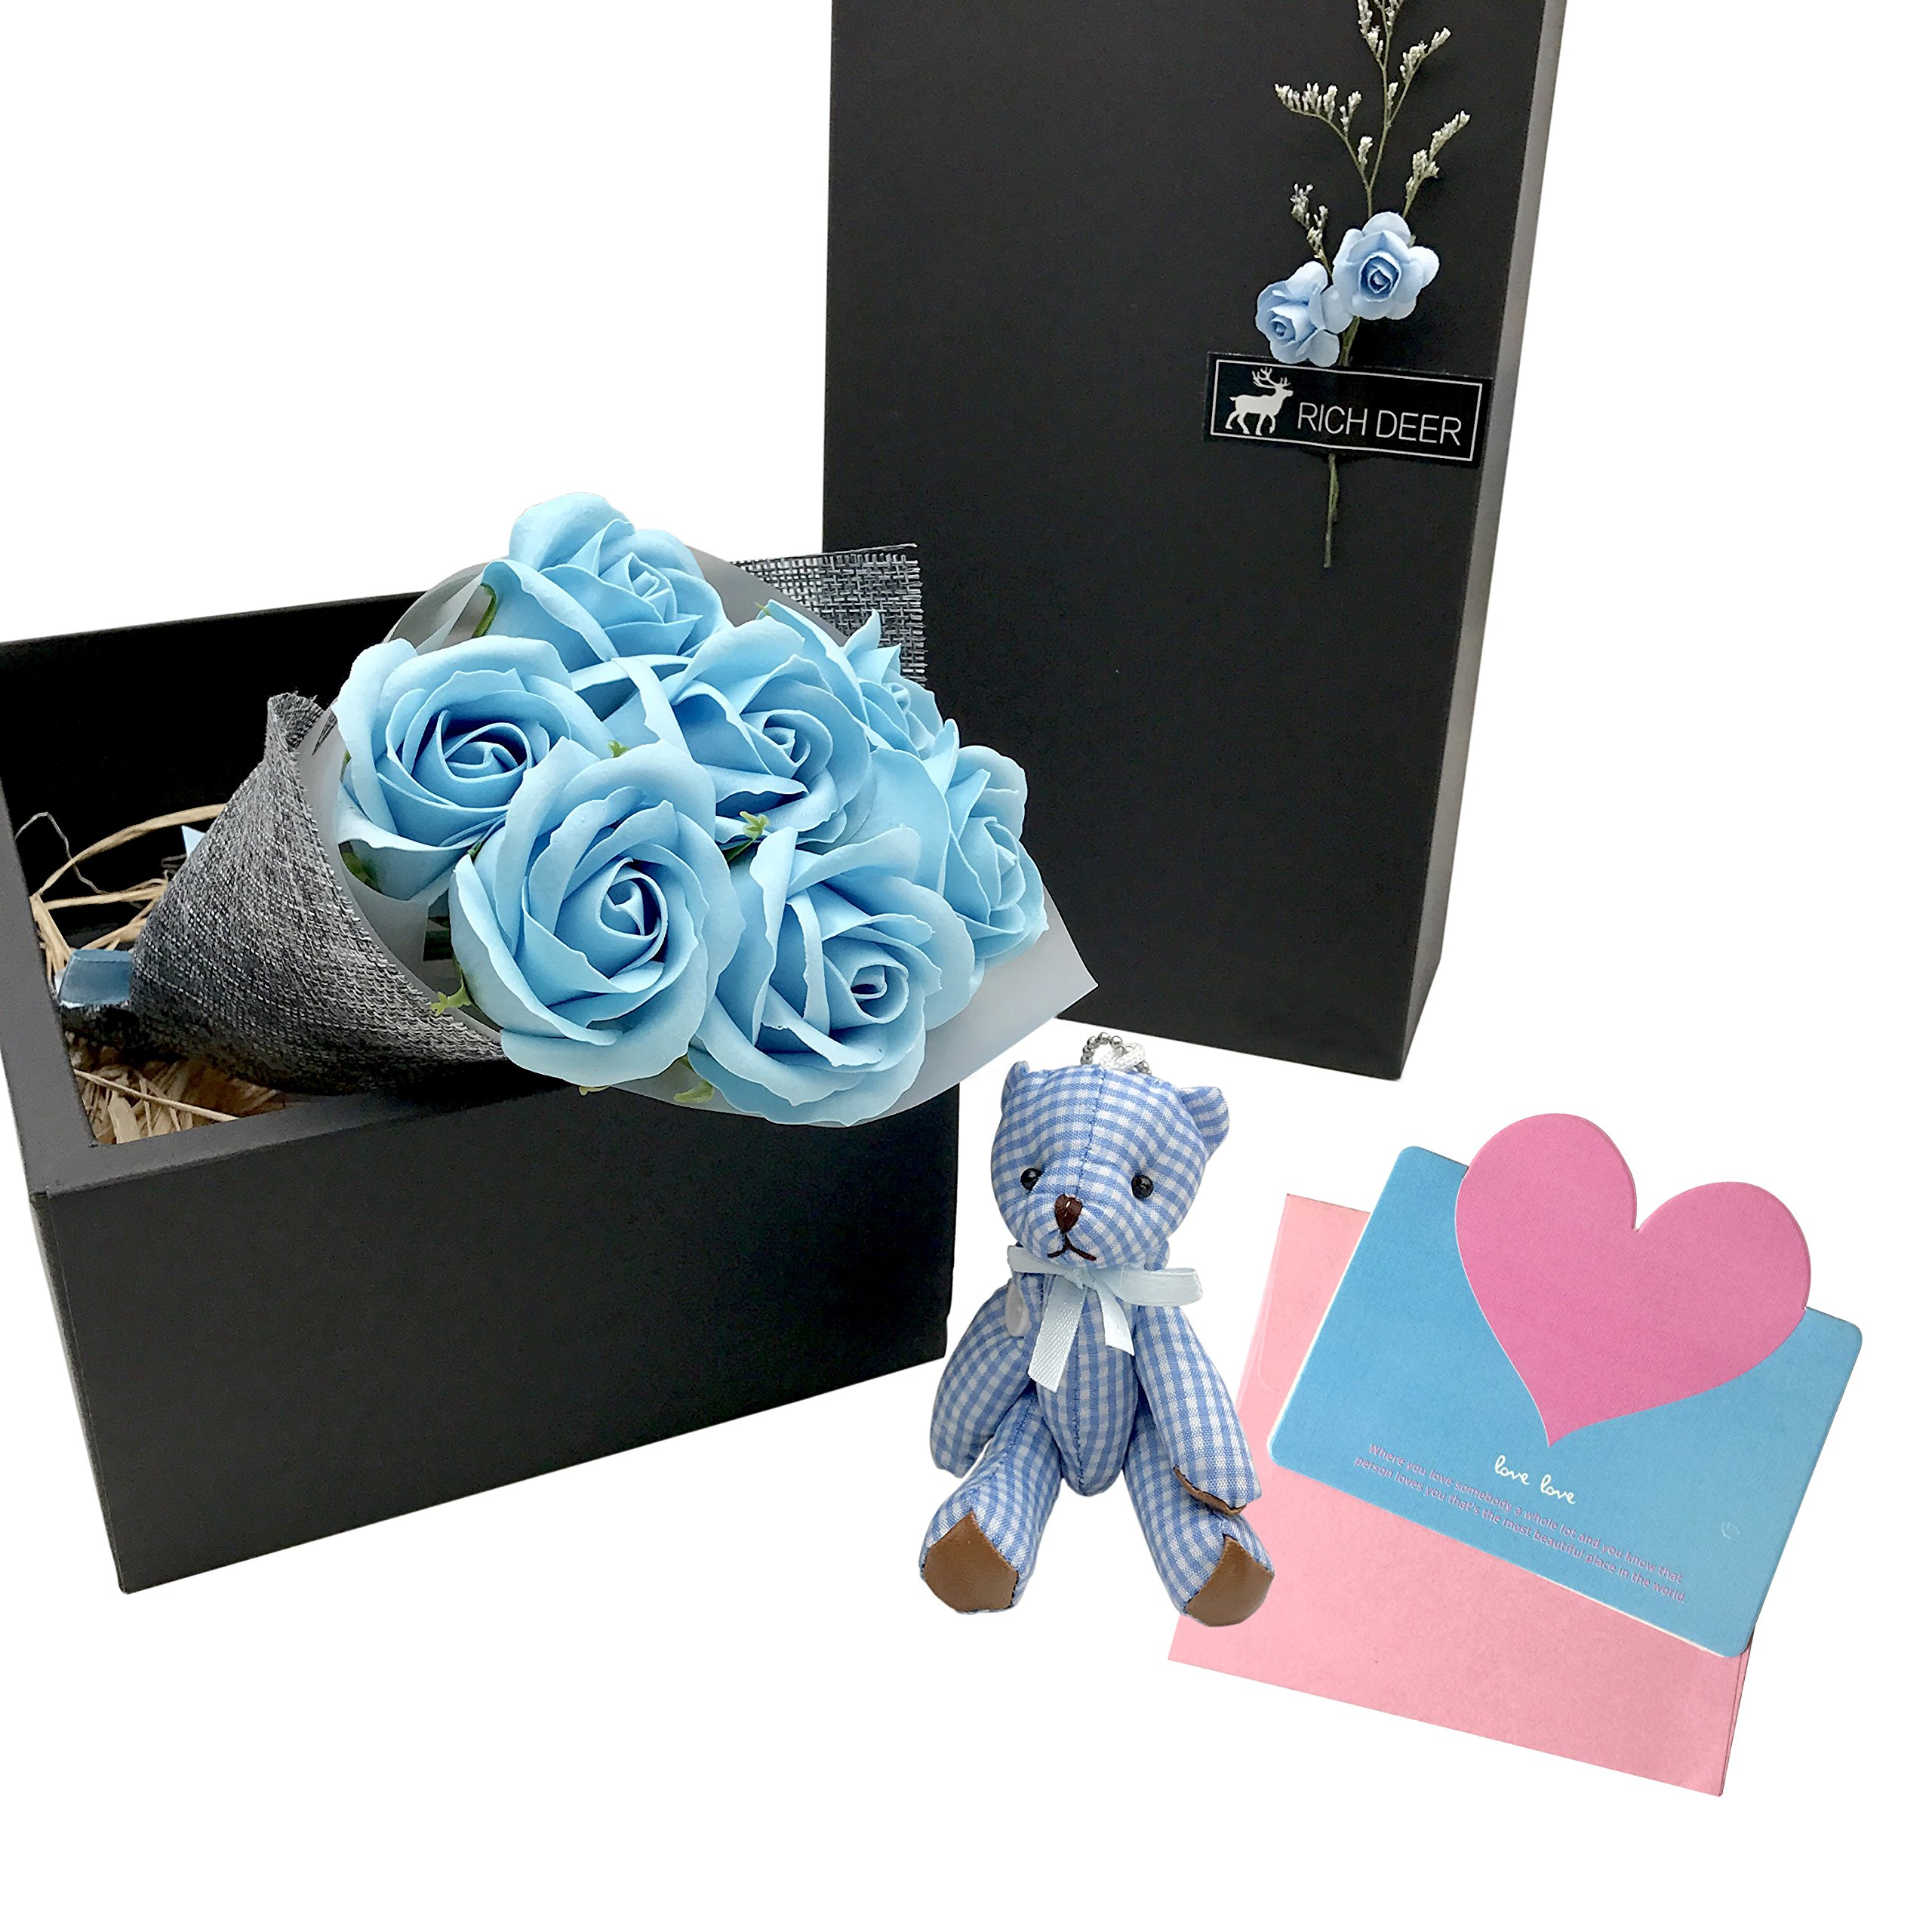 Valentines Day Unique Scented Bouquet Rose Flower Gift Box Include Plant Essential Oil Rose Soap Cards Action Figure Bear Great Gifts Idea For Her Women Teen Girls Mom Daughter (Blue)